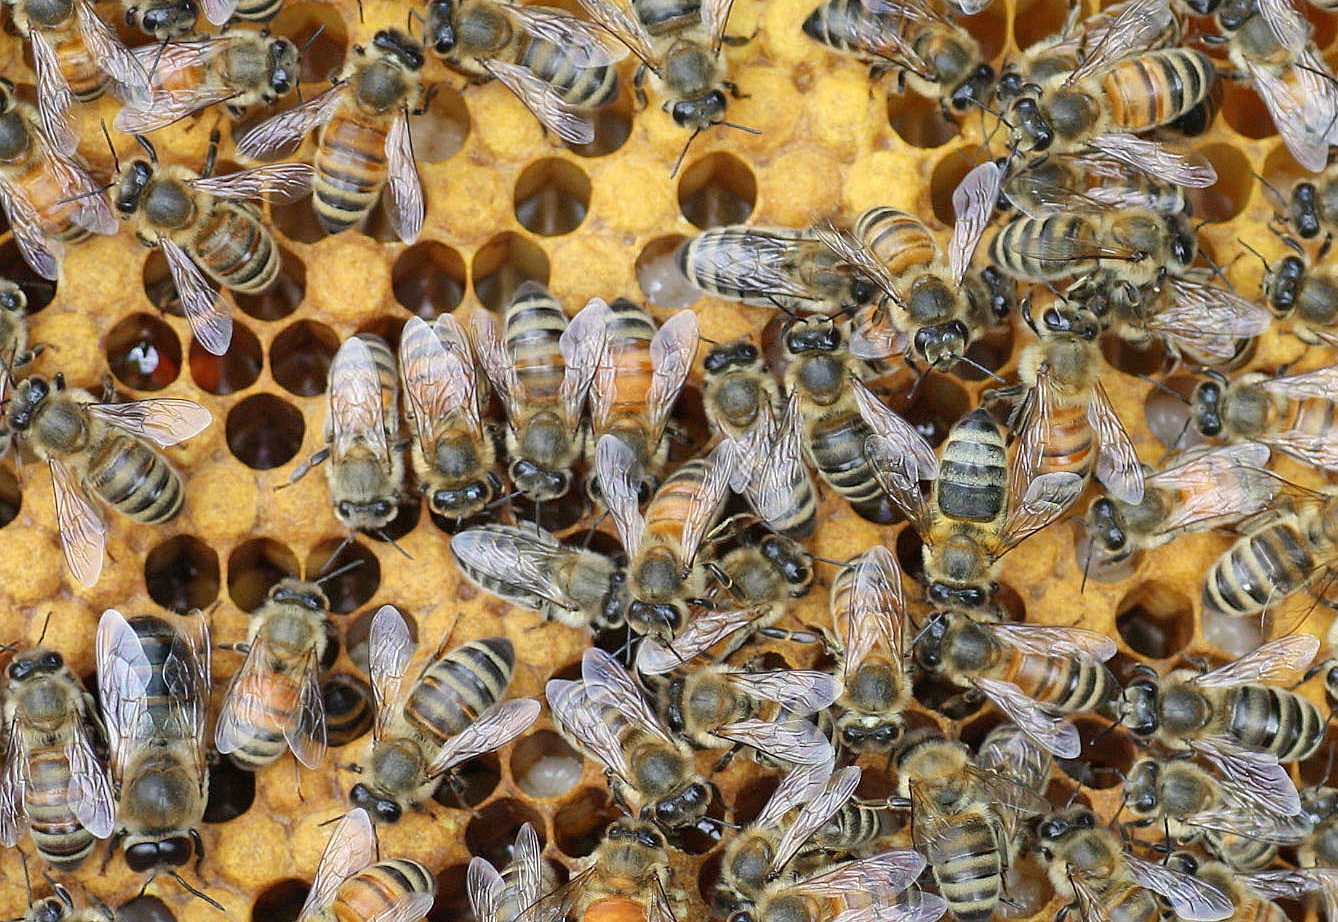 Different Types of Bees Pictures on Animal Picture Society - photo#5